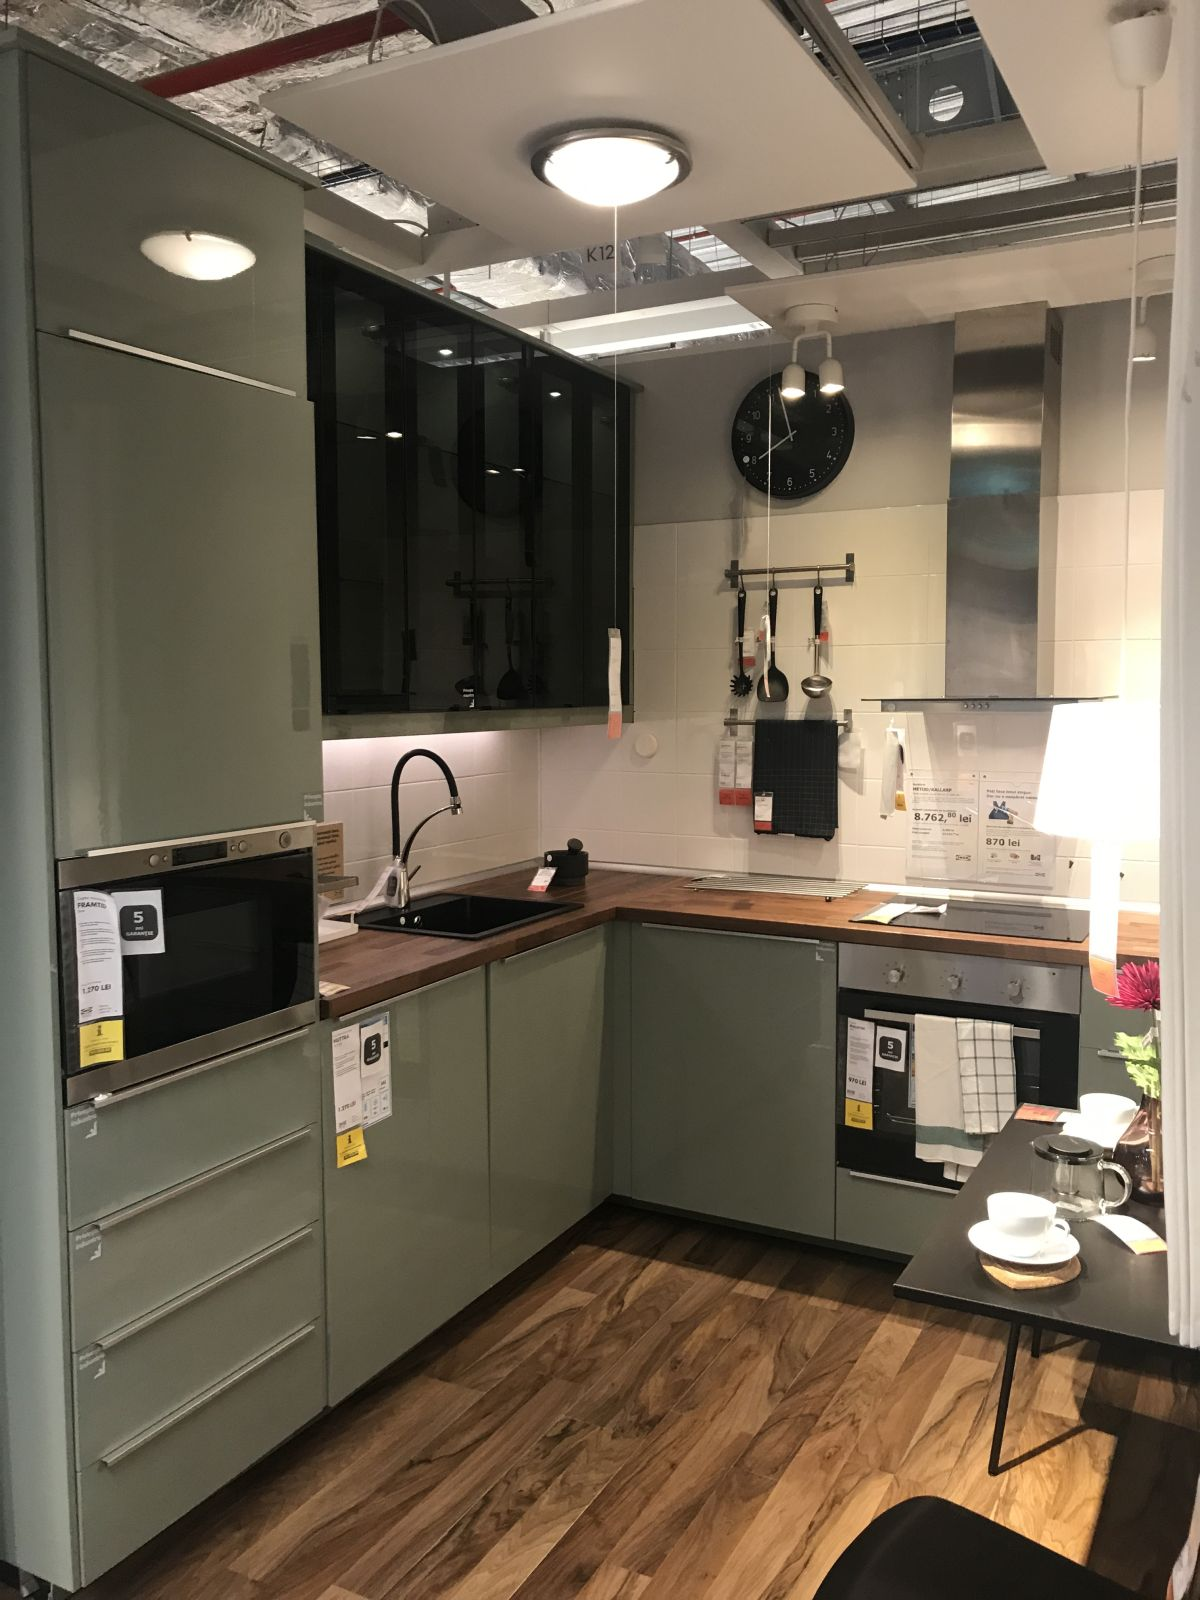 kitchen ikea home depot storage cabinets create a stylish space starting with an design high gloss doors and drawers add color shine to kitchens